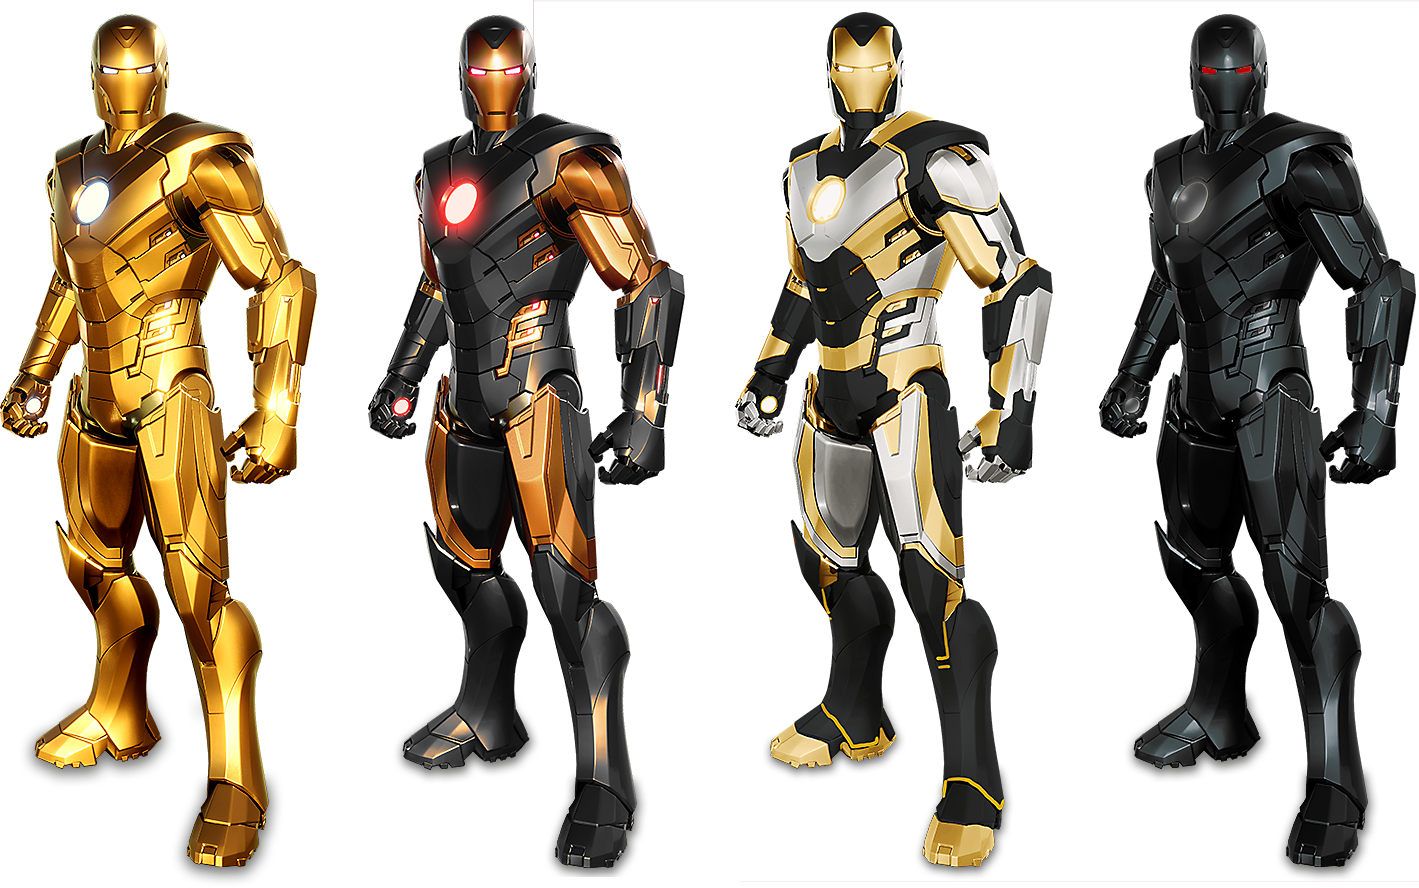 Marvel's Iron Man Digital Deluxe Edition Decos